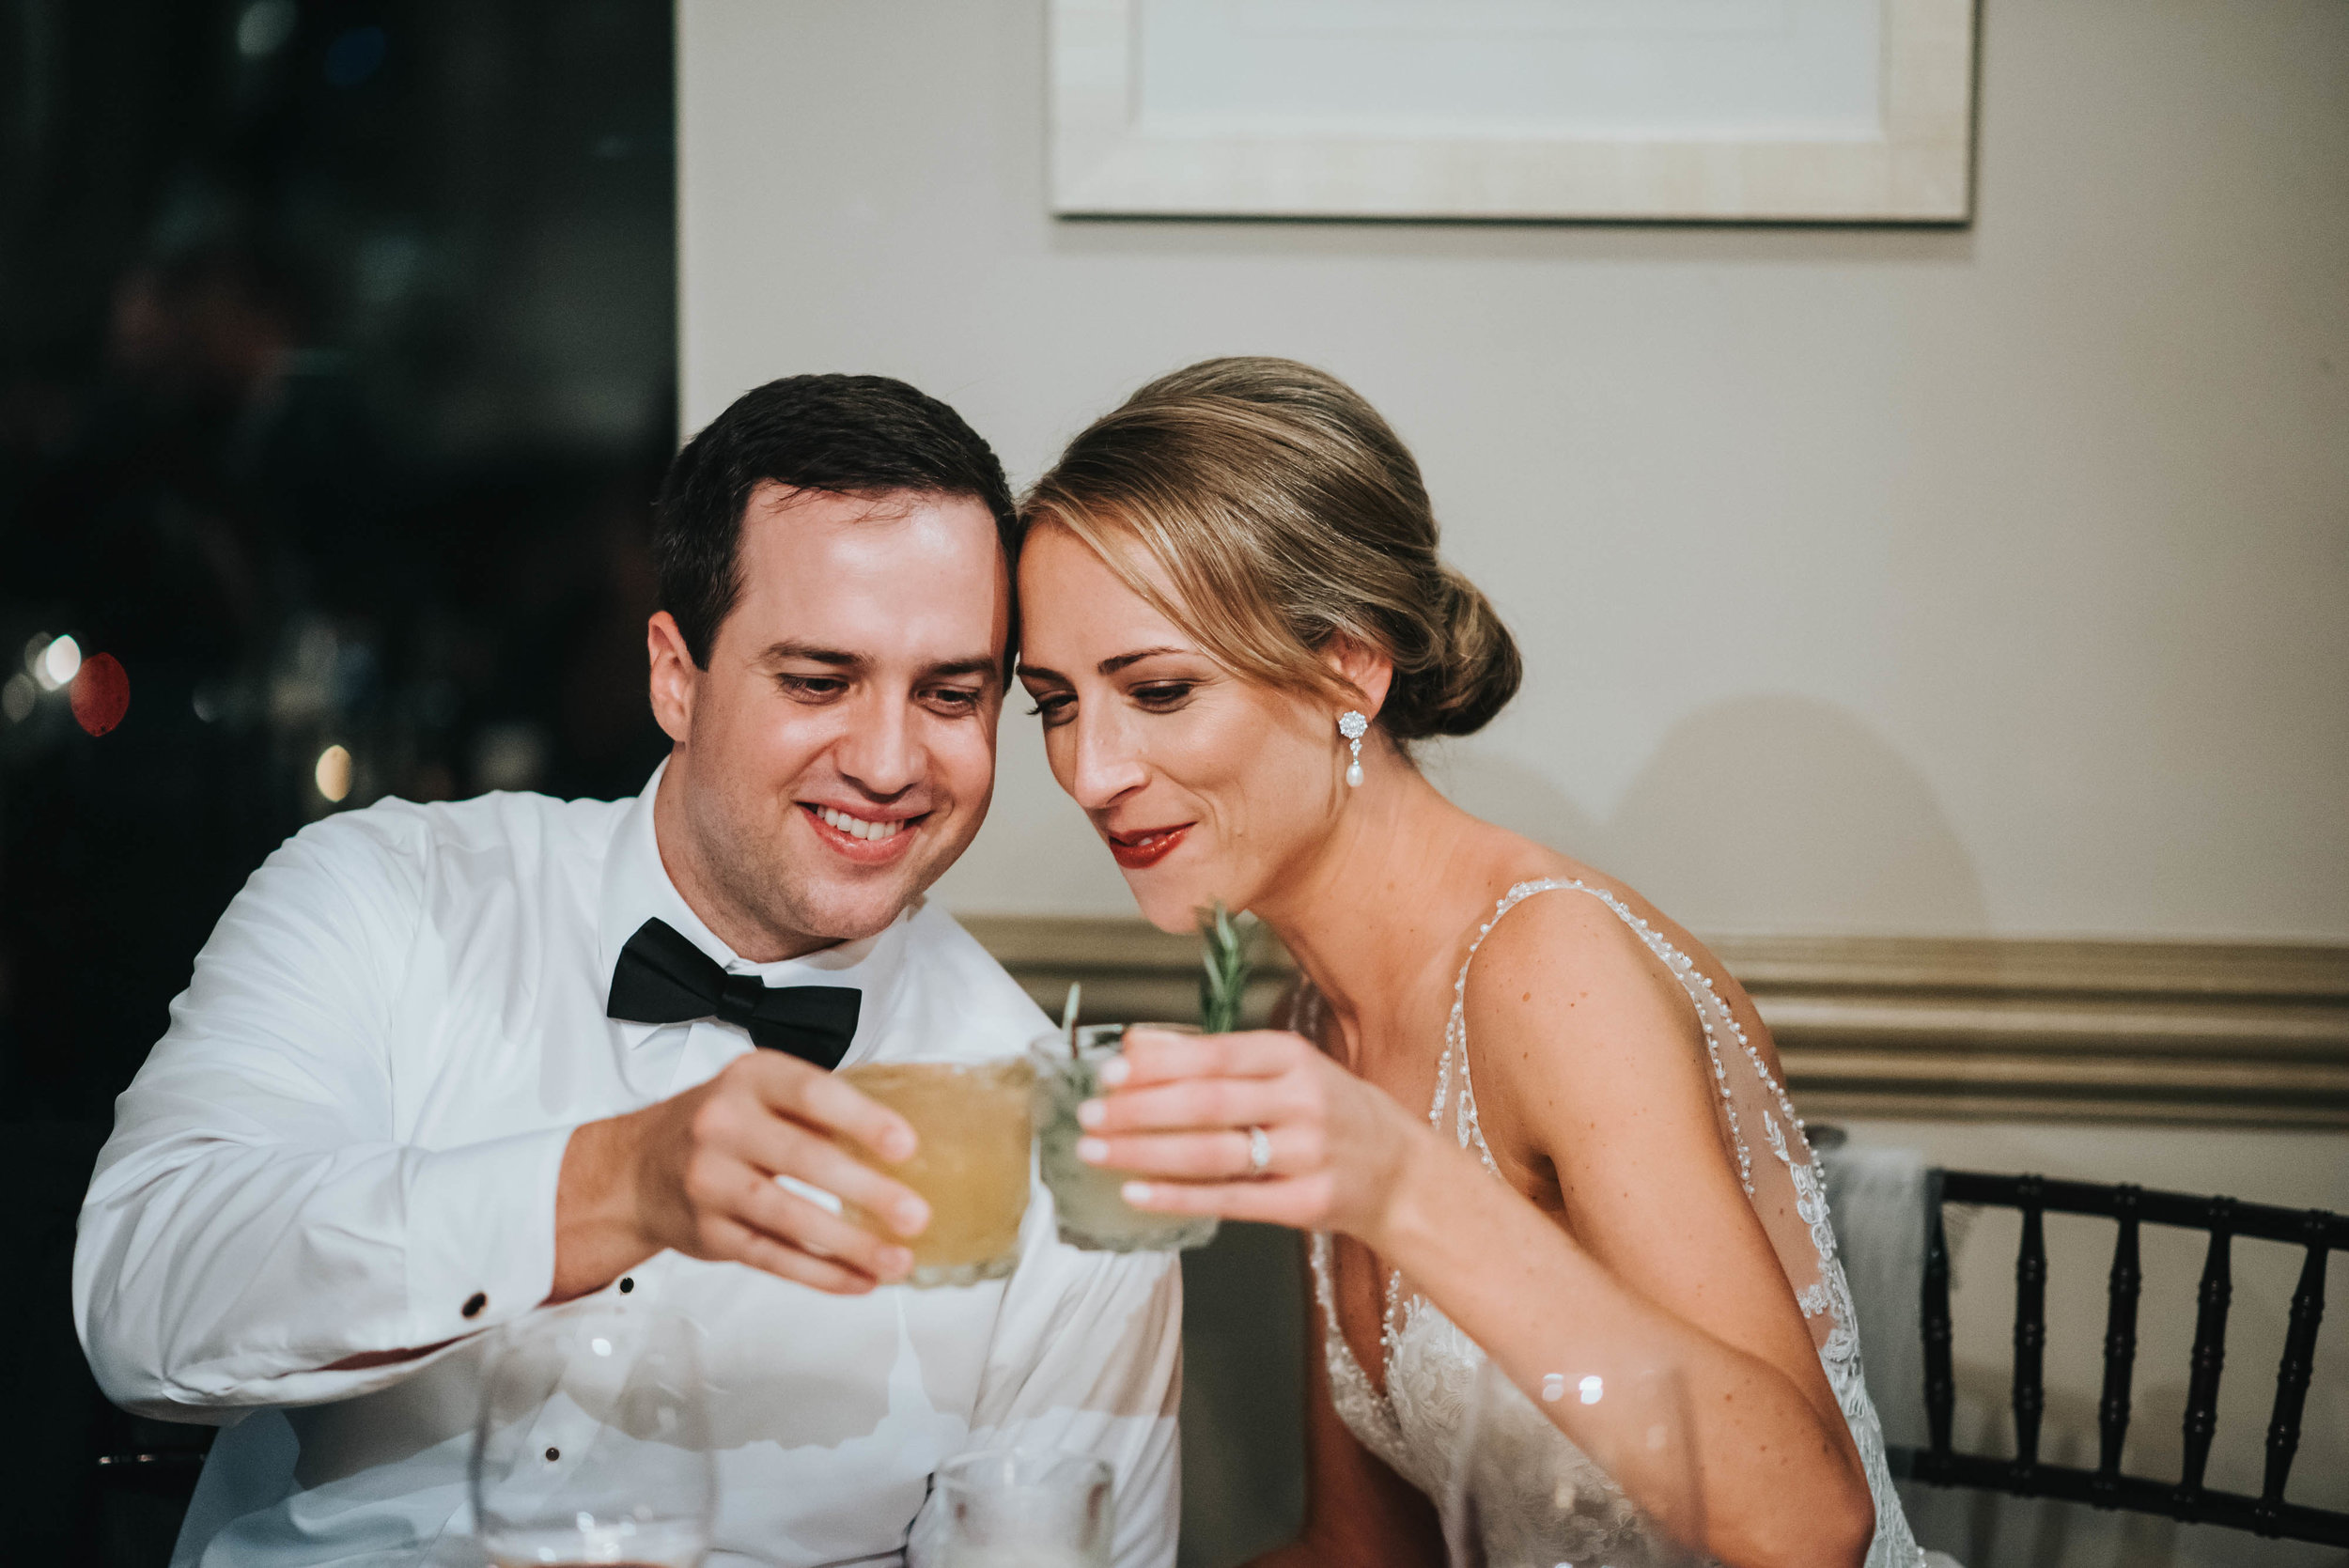 atlanta georgia midtown modern timeless nontraditional wedding photographer-962.jpg